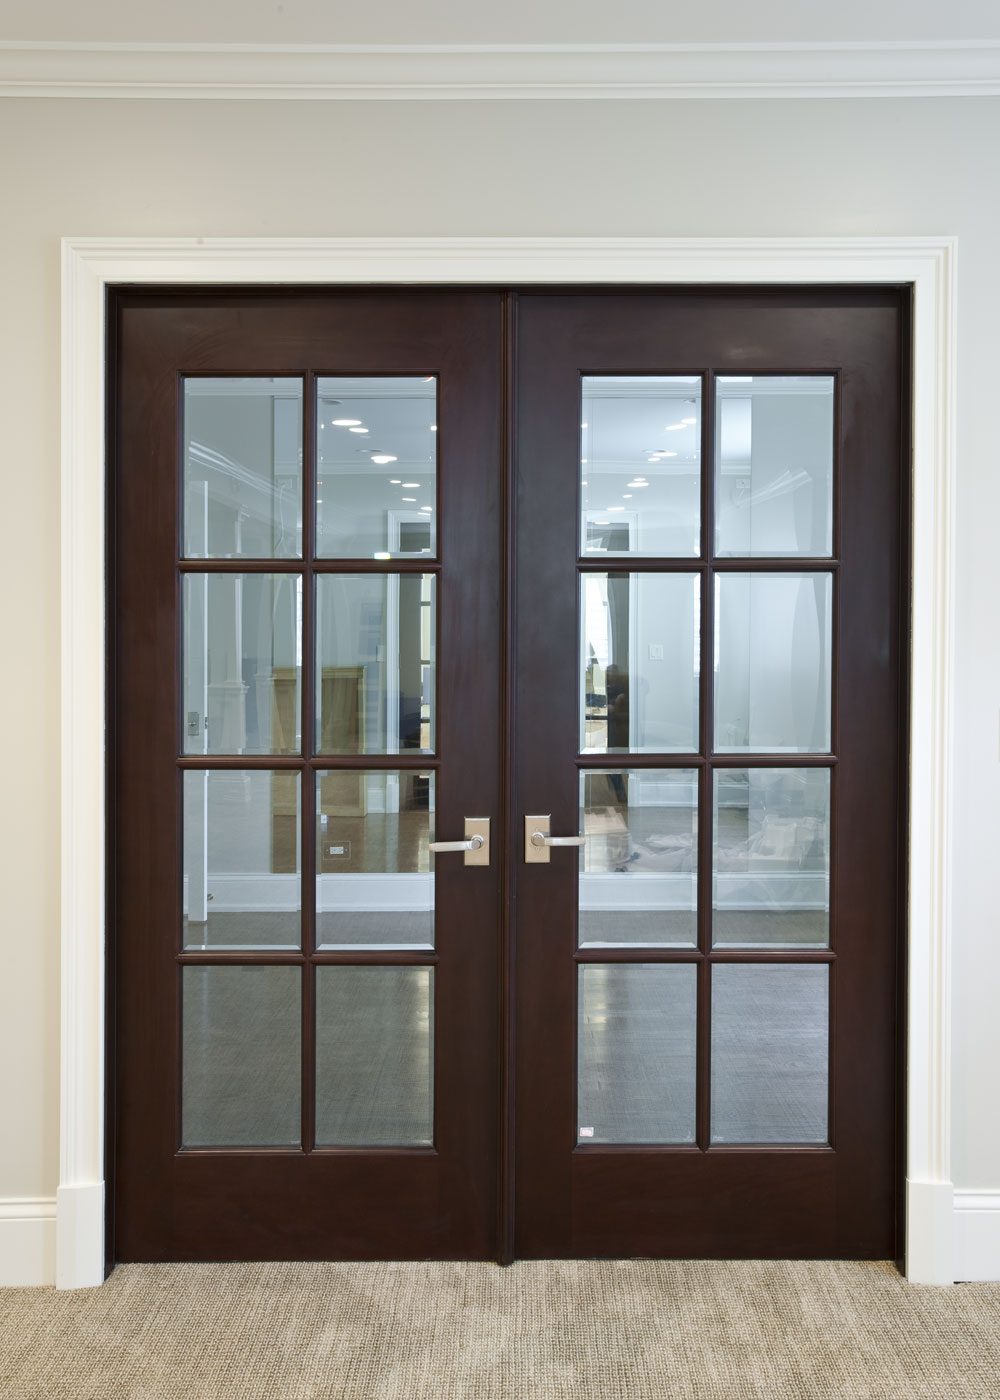 rosco french doors interior photo - 8